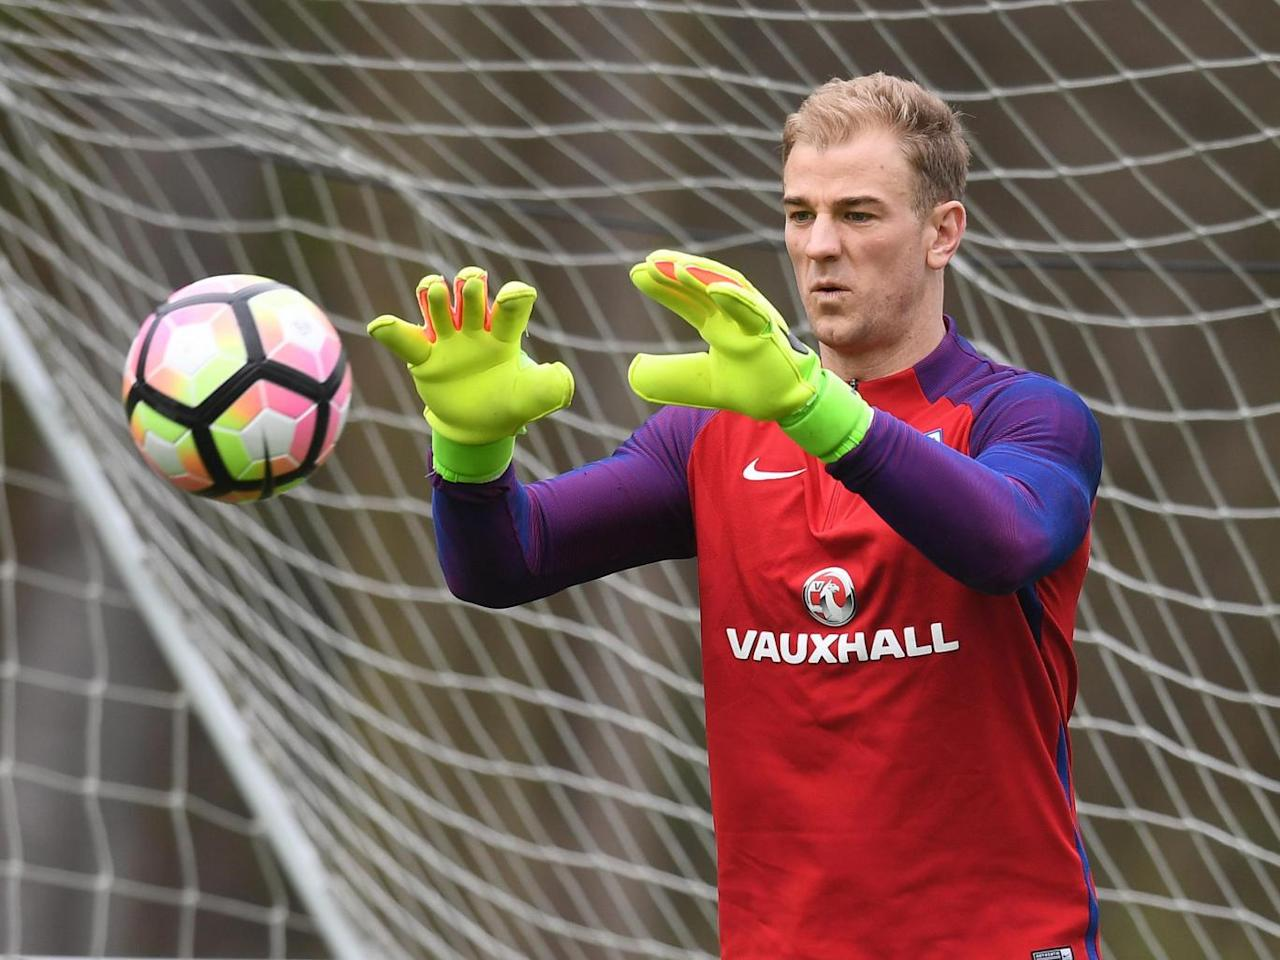 Joe Hart open to Manchester United switch if Real Madrid make another transfer offer for David de Gea